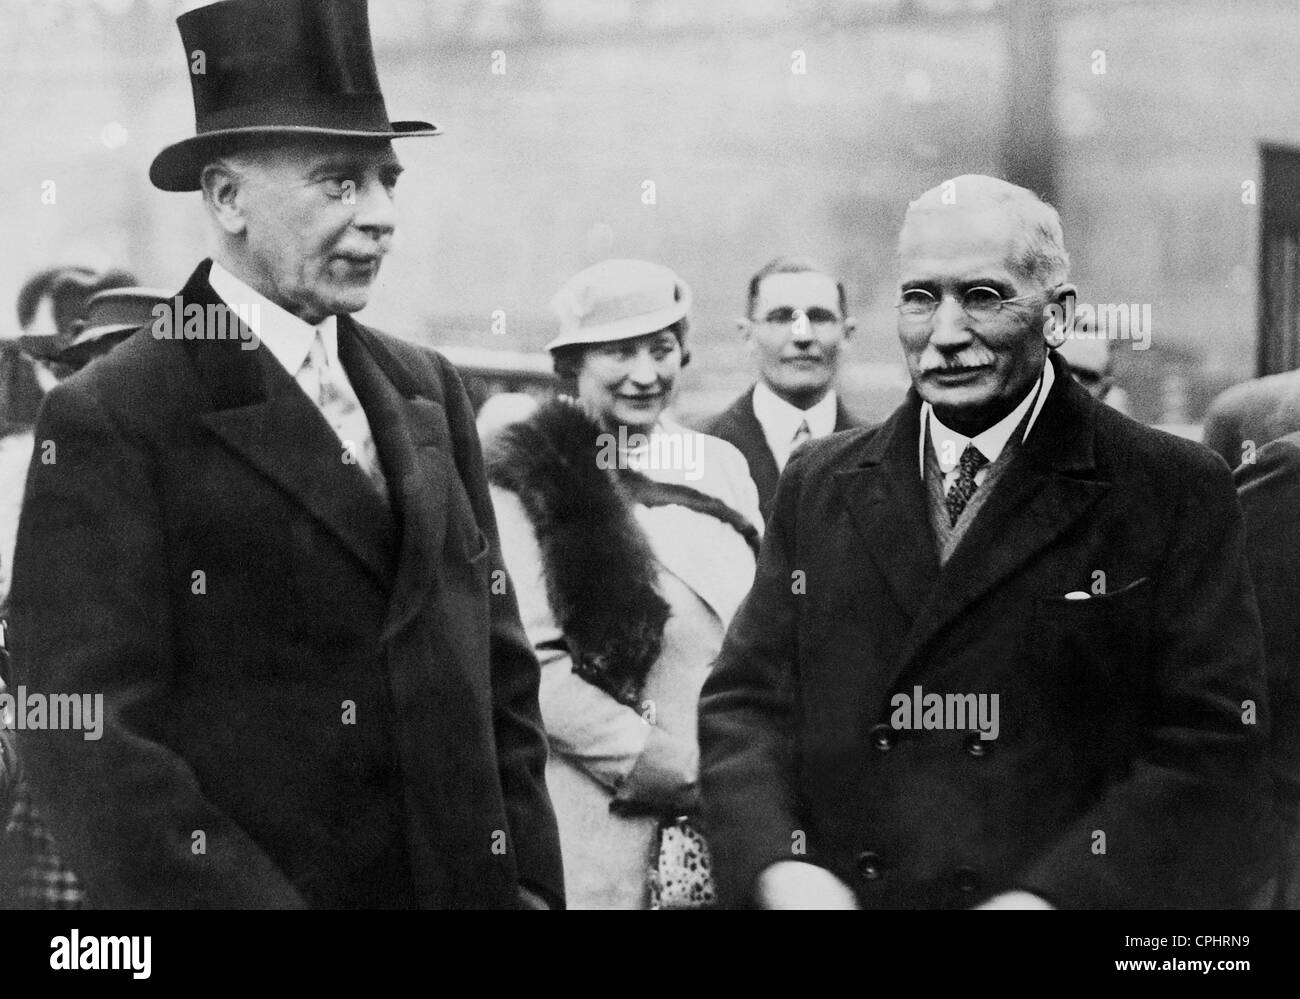 James Barry Munnick Hertzog and the Earl of Athlon in London, 1935 - Stock Image